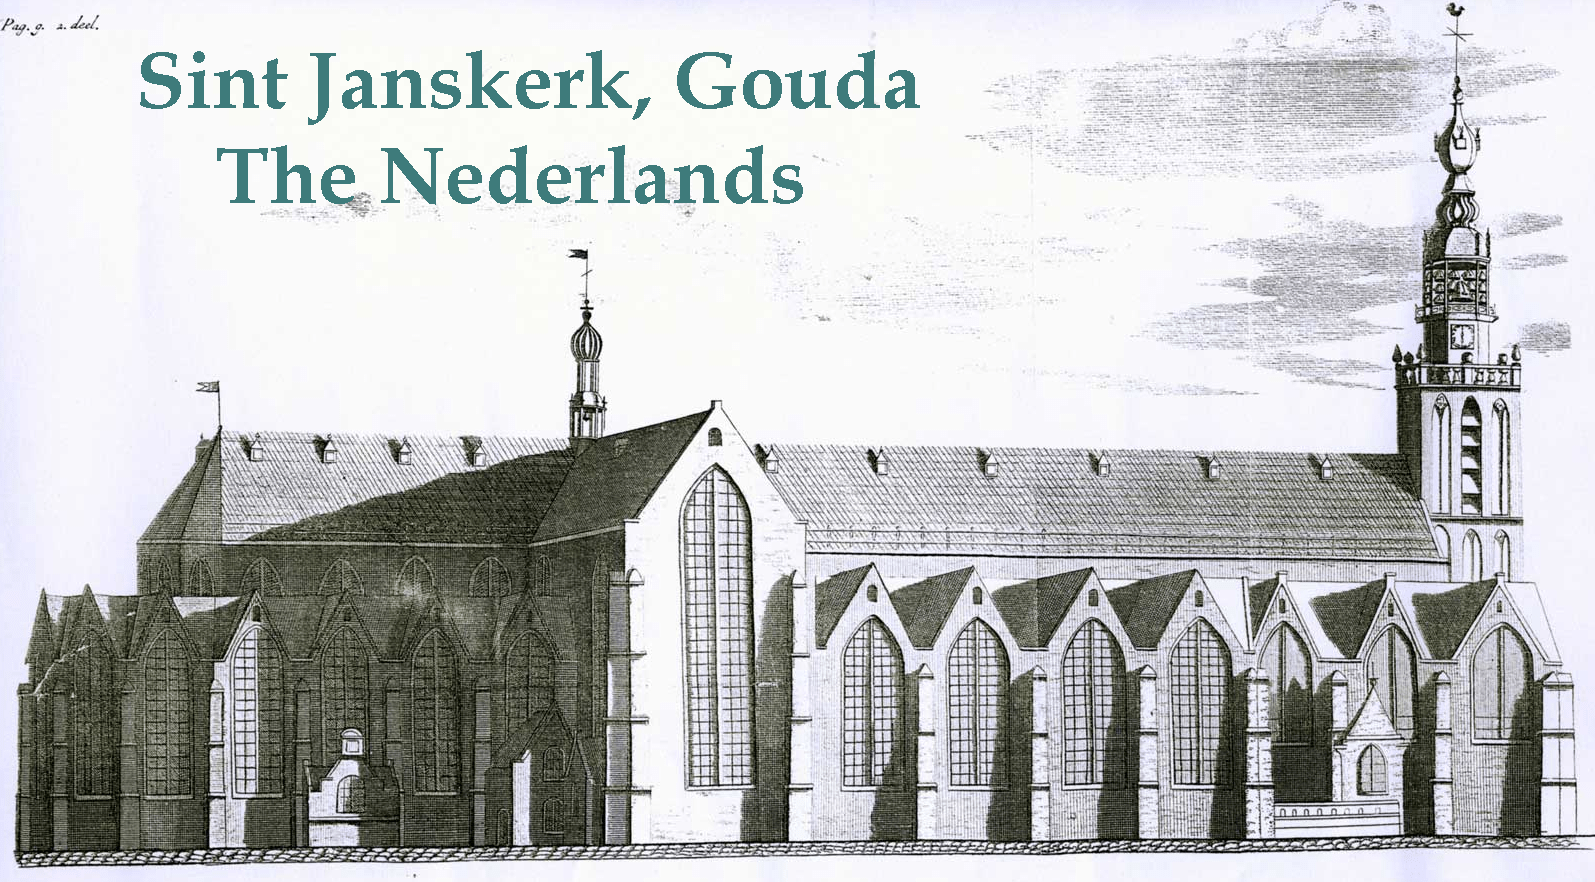 Sint Janskerk Church